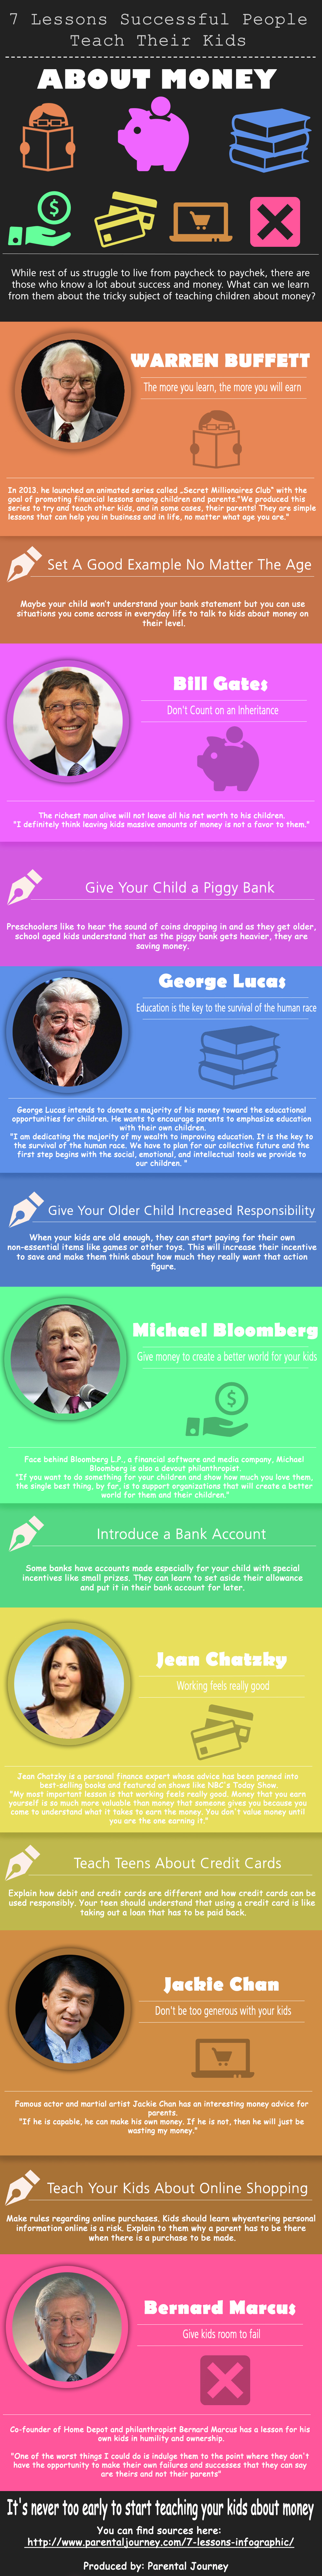 7 Lessons Successful People Teach Their Kids About Money Infographic Successful People